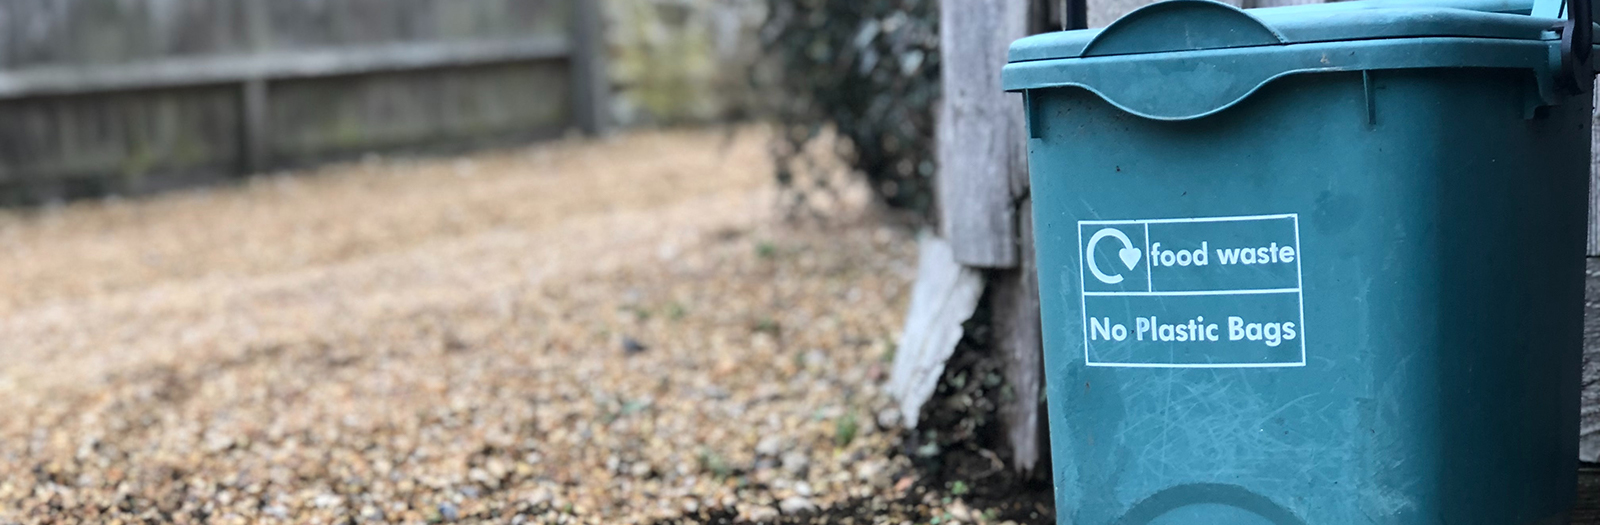 green bin for compost